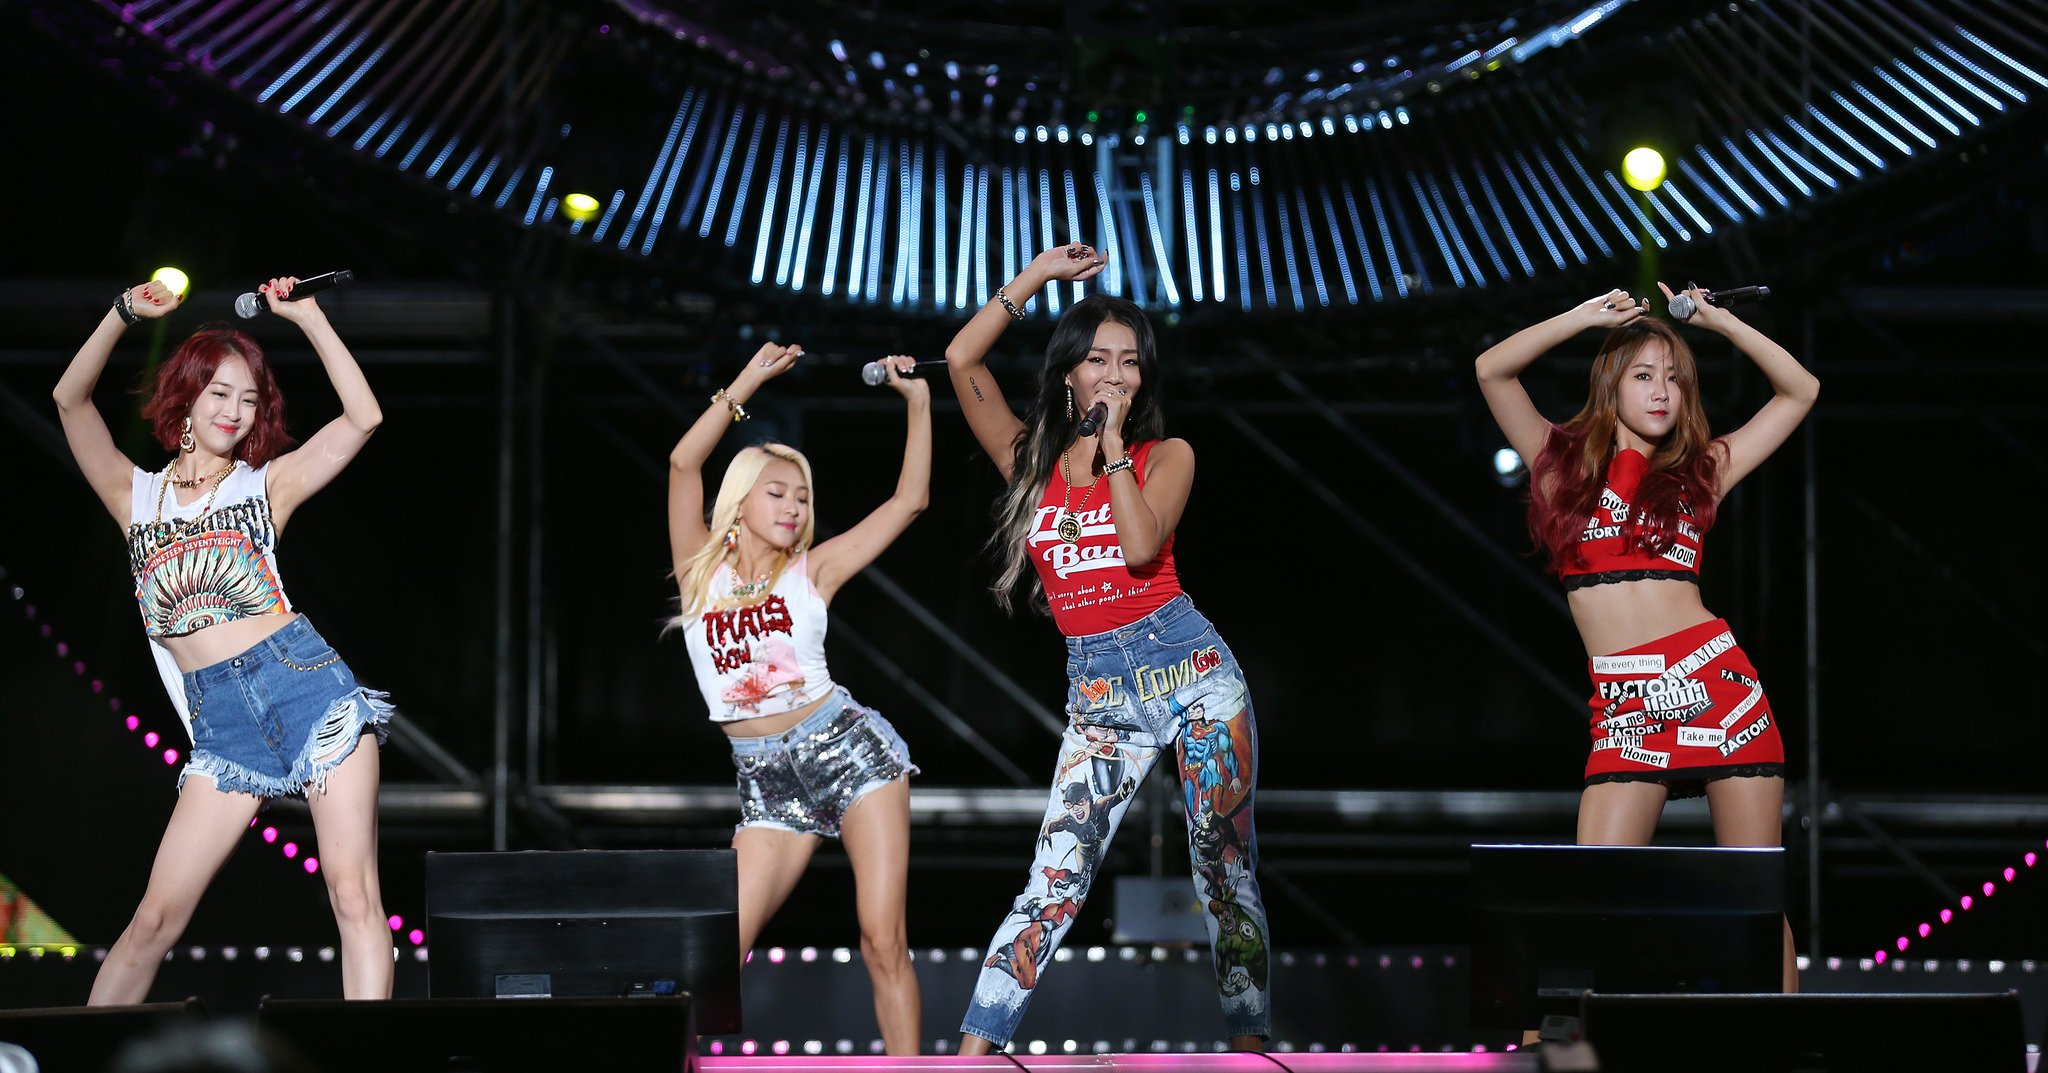 [★BREAKING] SISTAR Reported To Be Disbanding After 7 Years